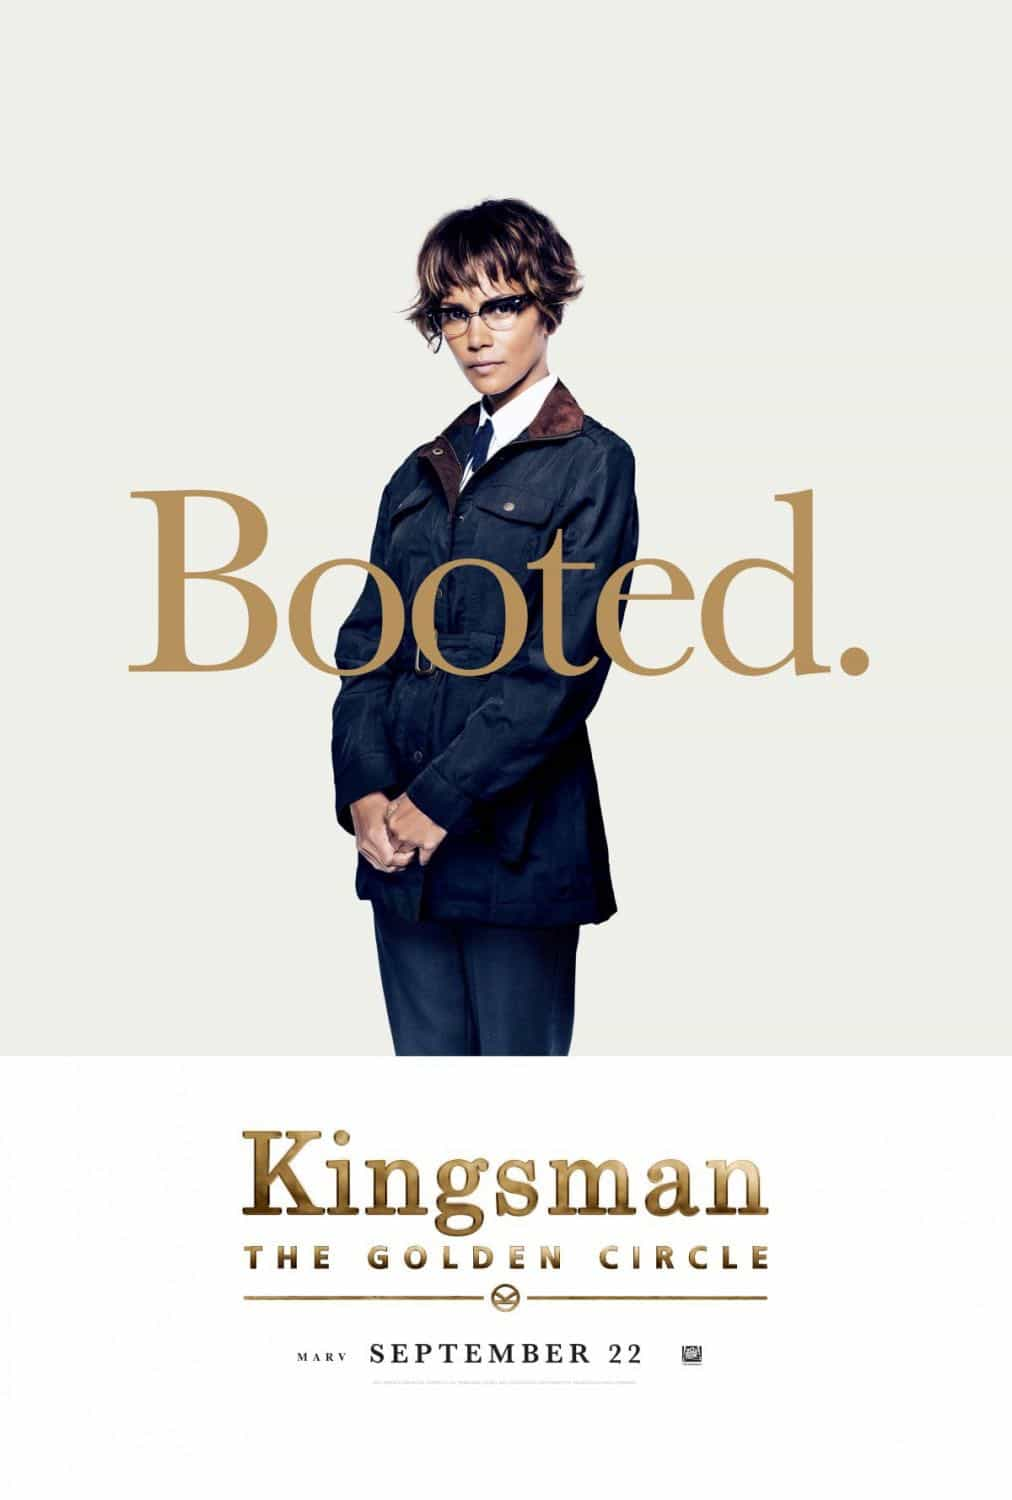 KINGSMAN THE GOLDEN CIRCLE Character Poster Halle Berry